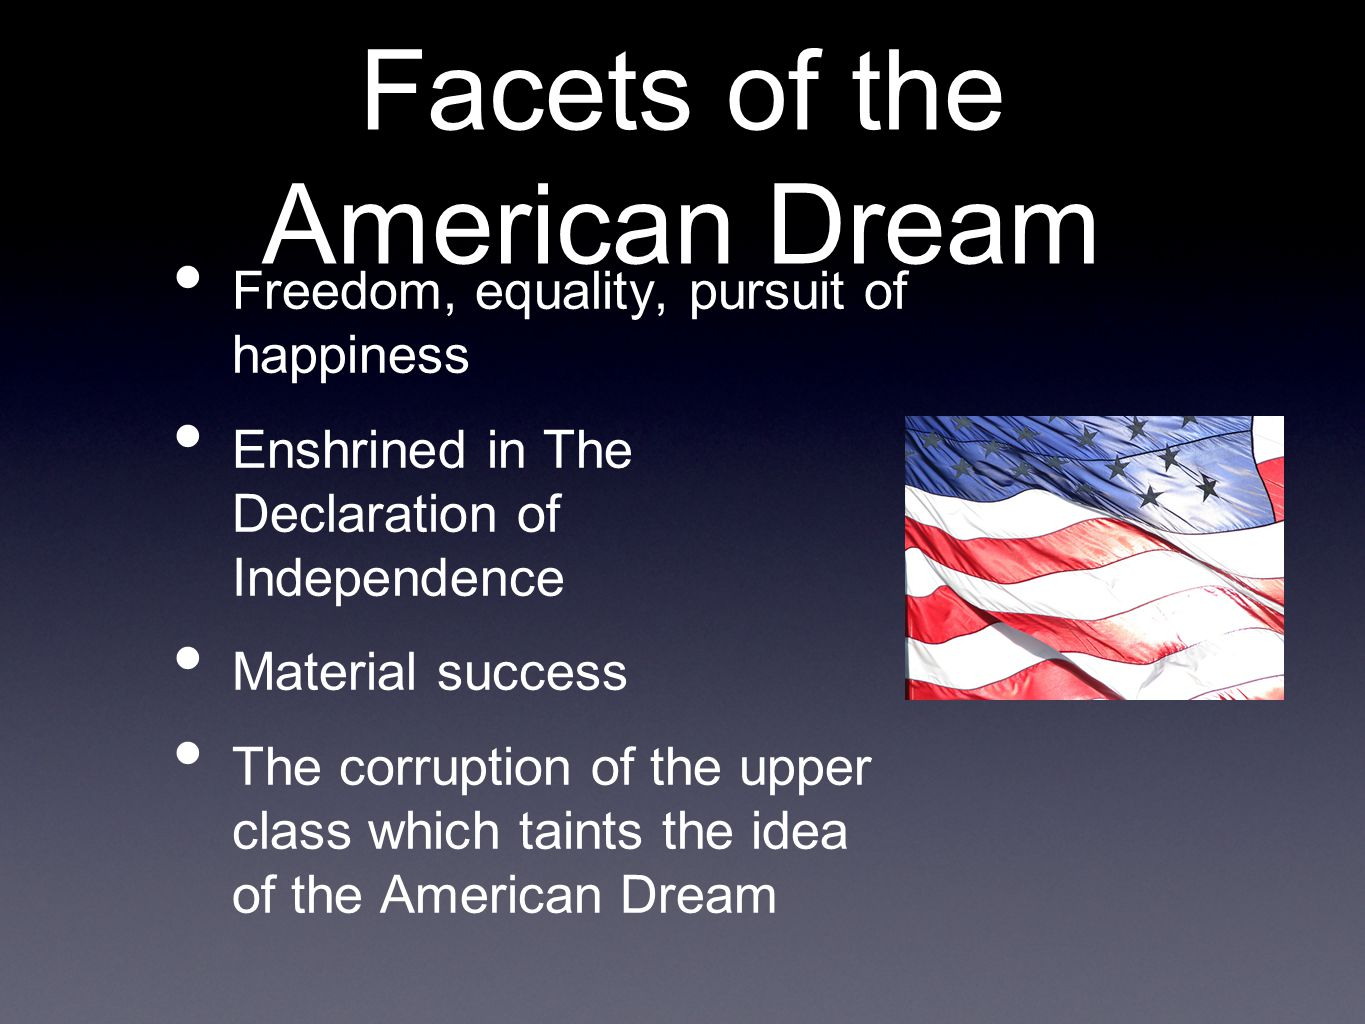 Facets of the American Dream Freedom, equality, pursuit of happiness Enshrined in The Declaration of Independence Material success The corruption of the upper class which taints the idea of the American Dream